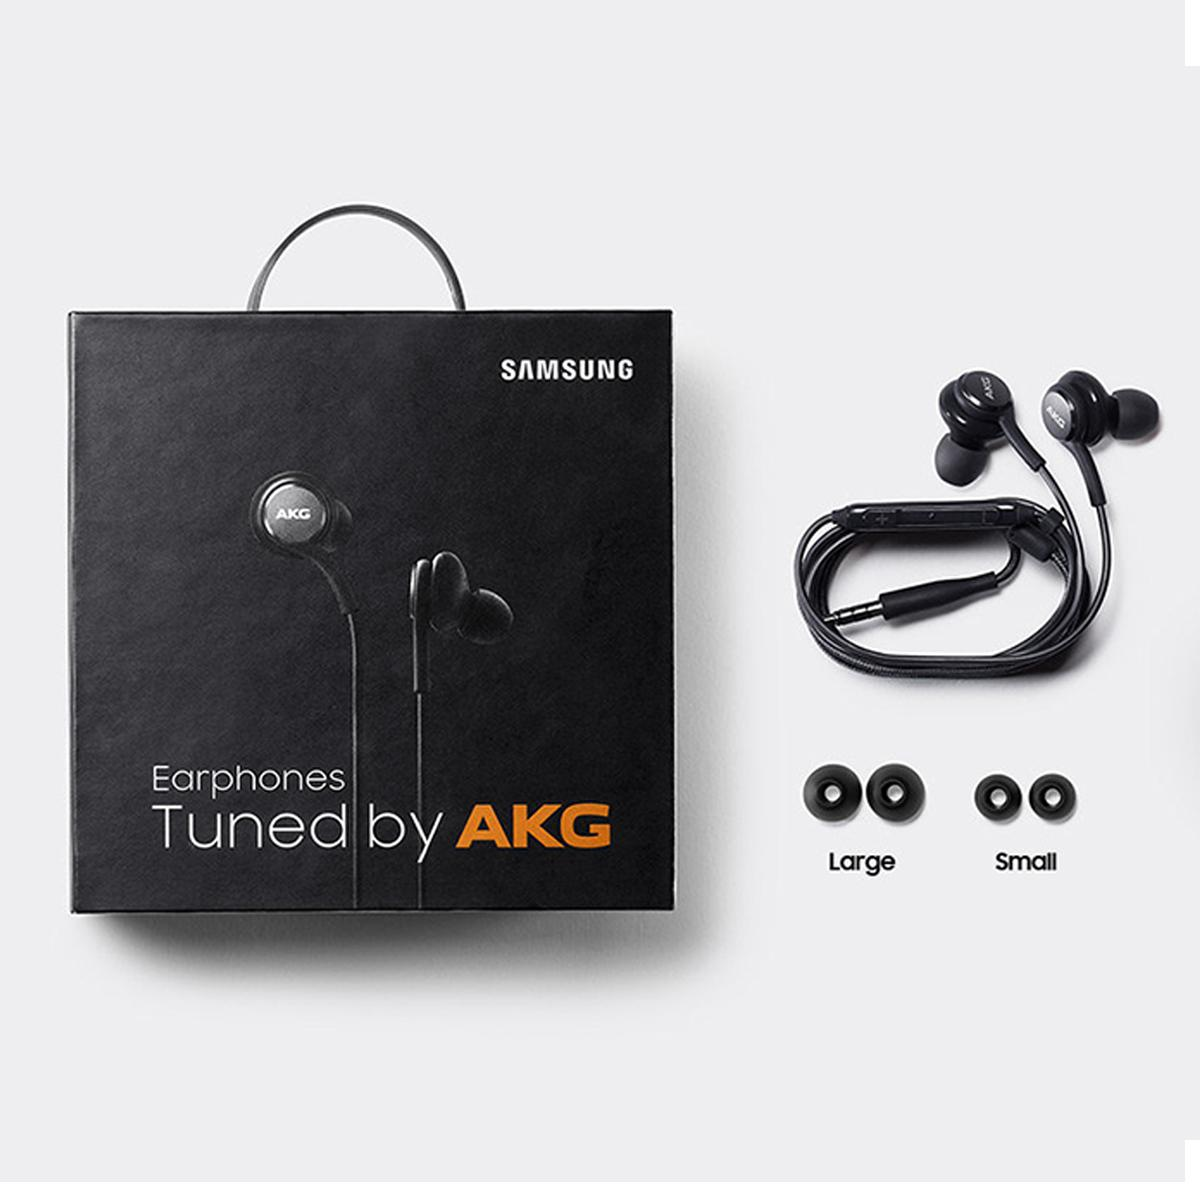 Samsung Audio Device Philippines - Samsung Audio & Music Devices for sale - prices & reviews   Lazada